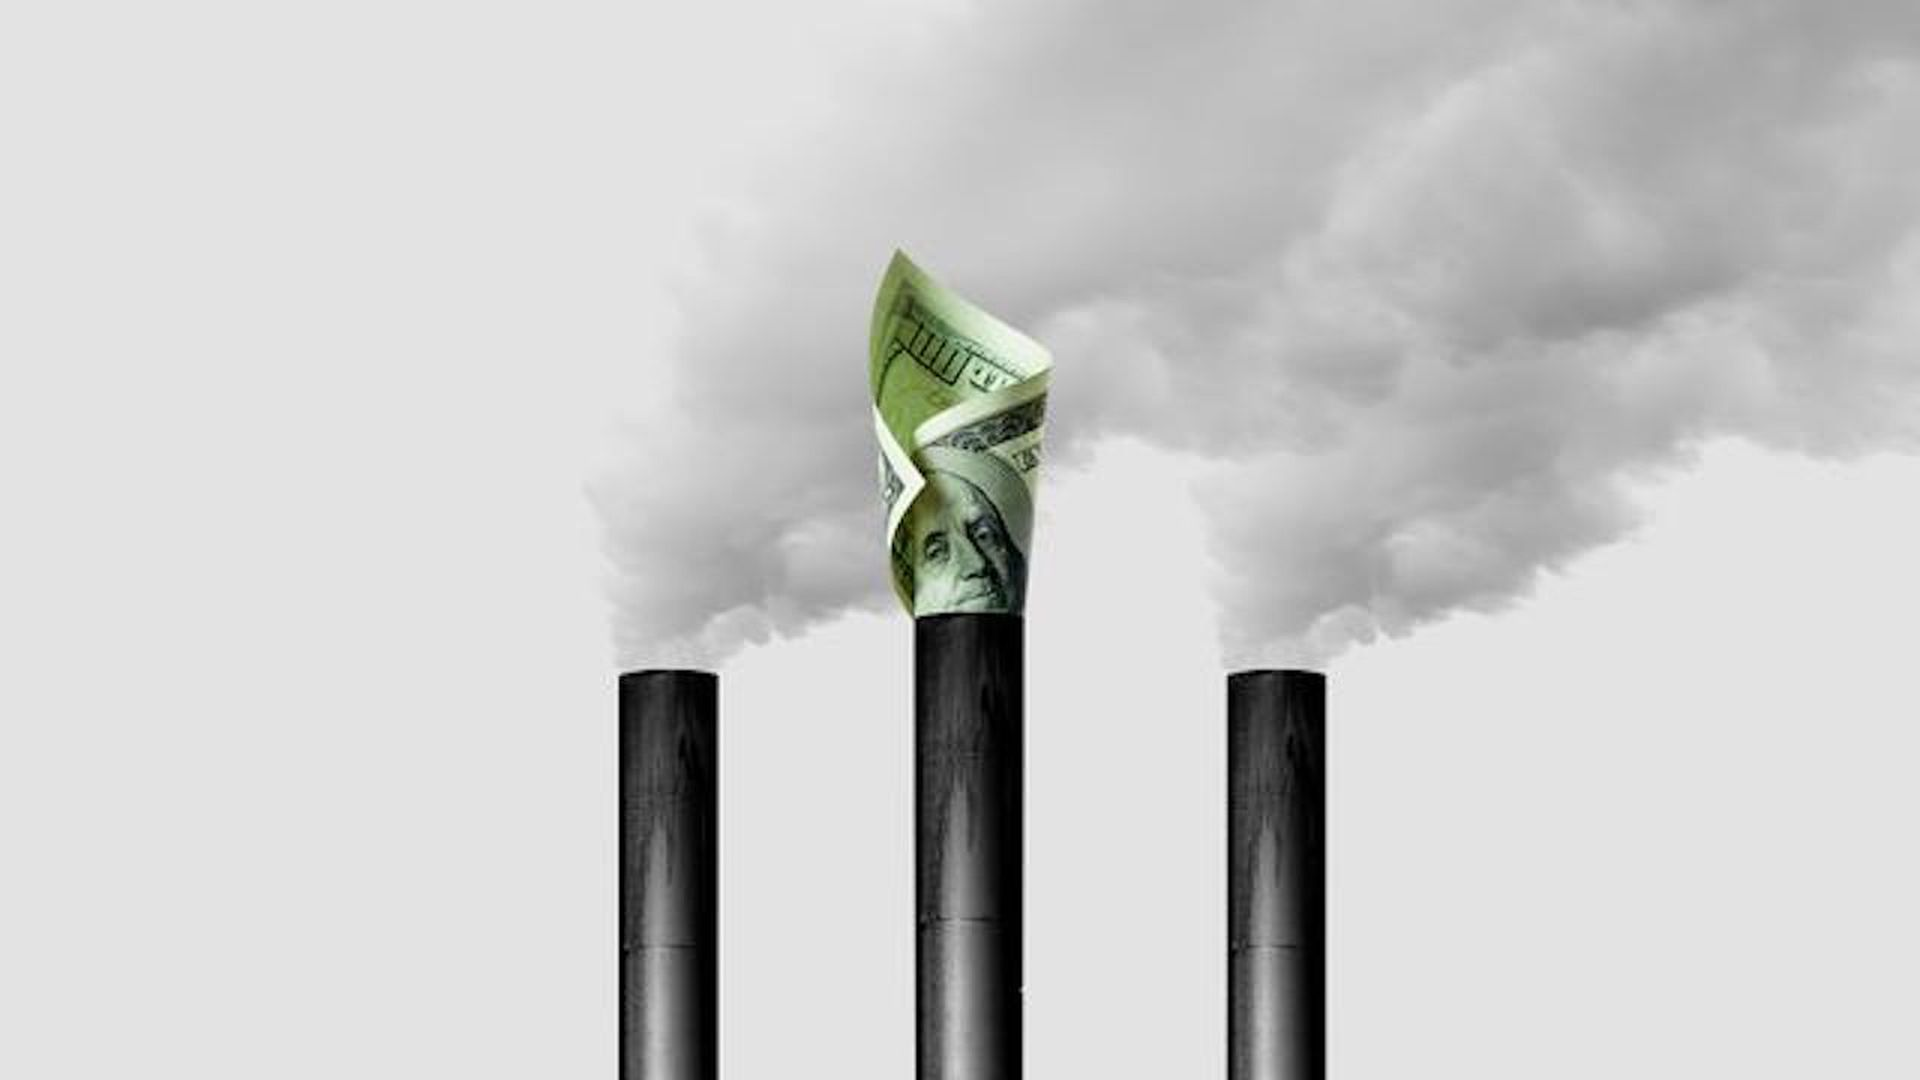 Carbon tax advocacy group registers to lobby on behalf of Climate Leadership Council